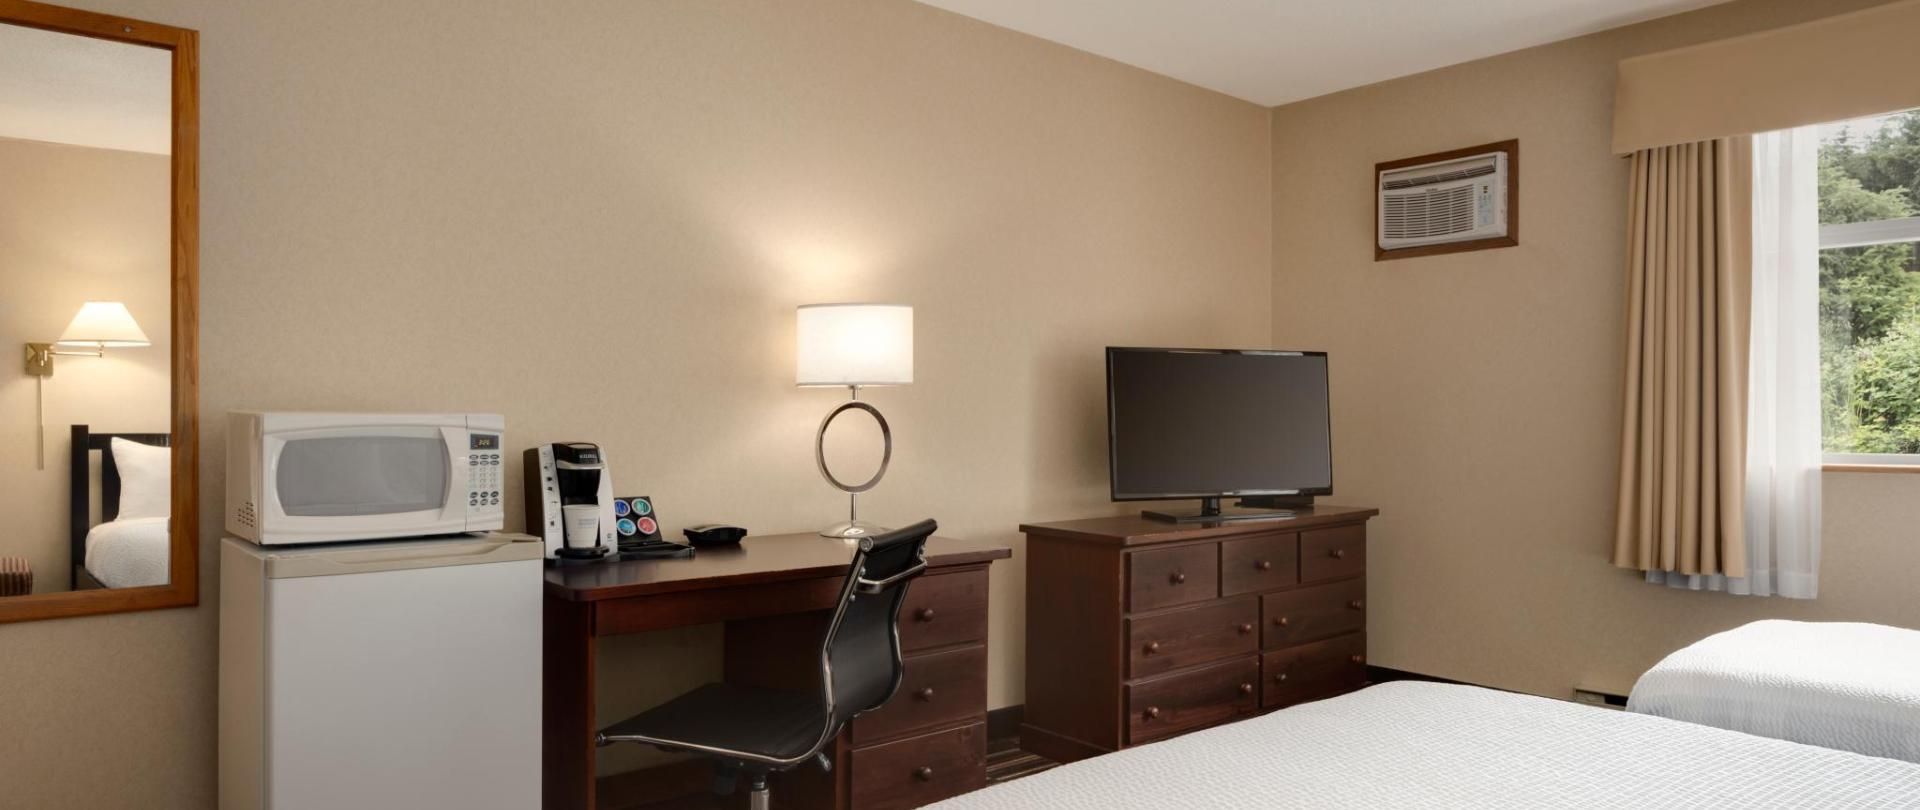 Days Inn Nanaimo - 1 Queen 1 Single  Accessible Room - 1446692.jpg